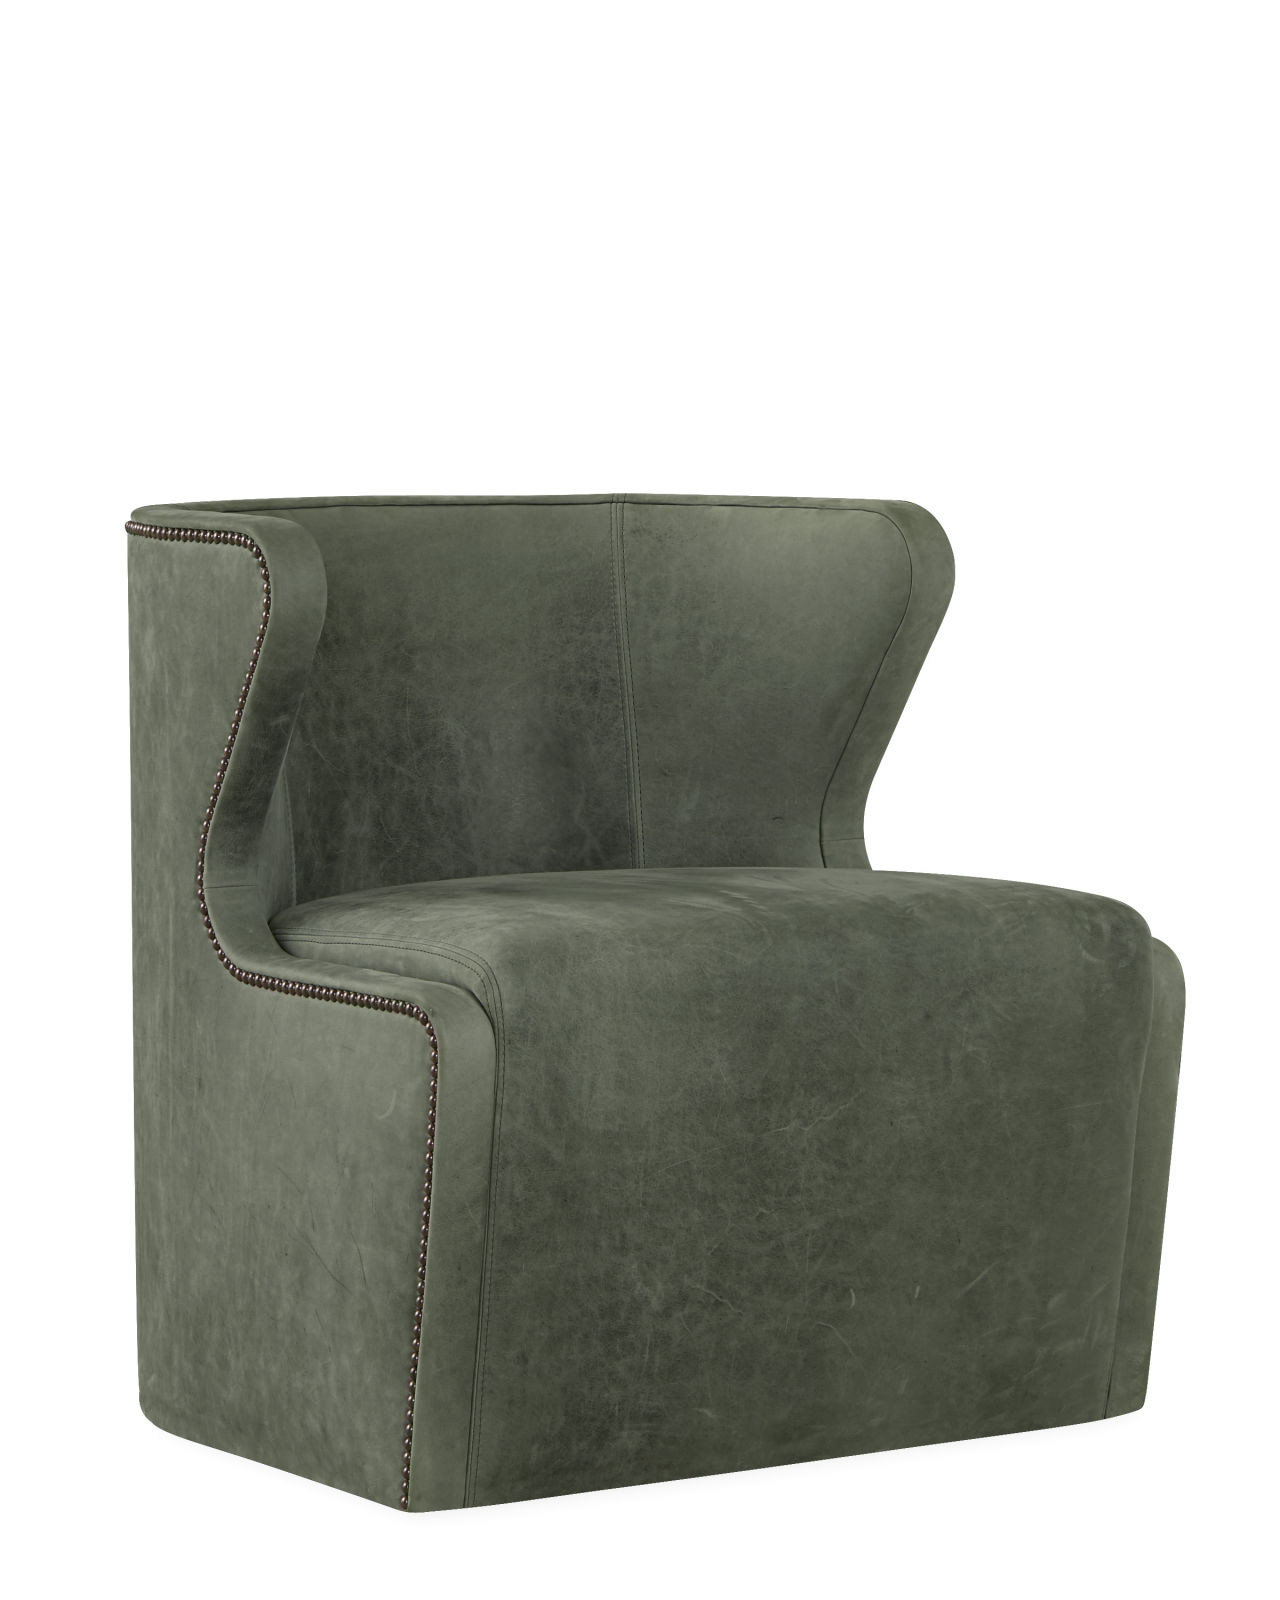 Leather Swivel Chair – $3,485.00